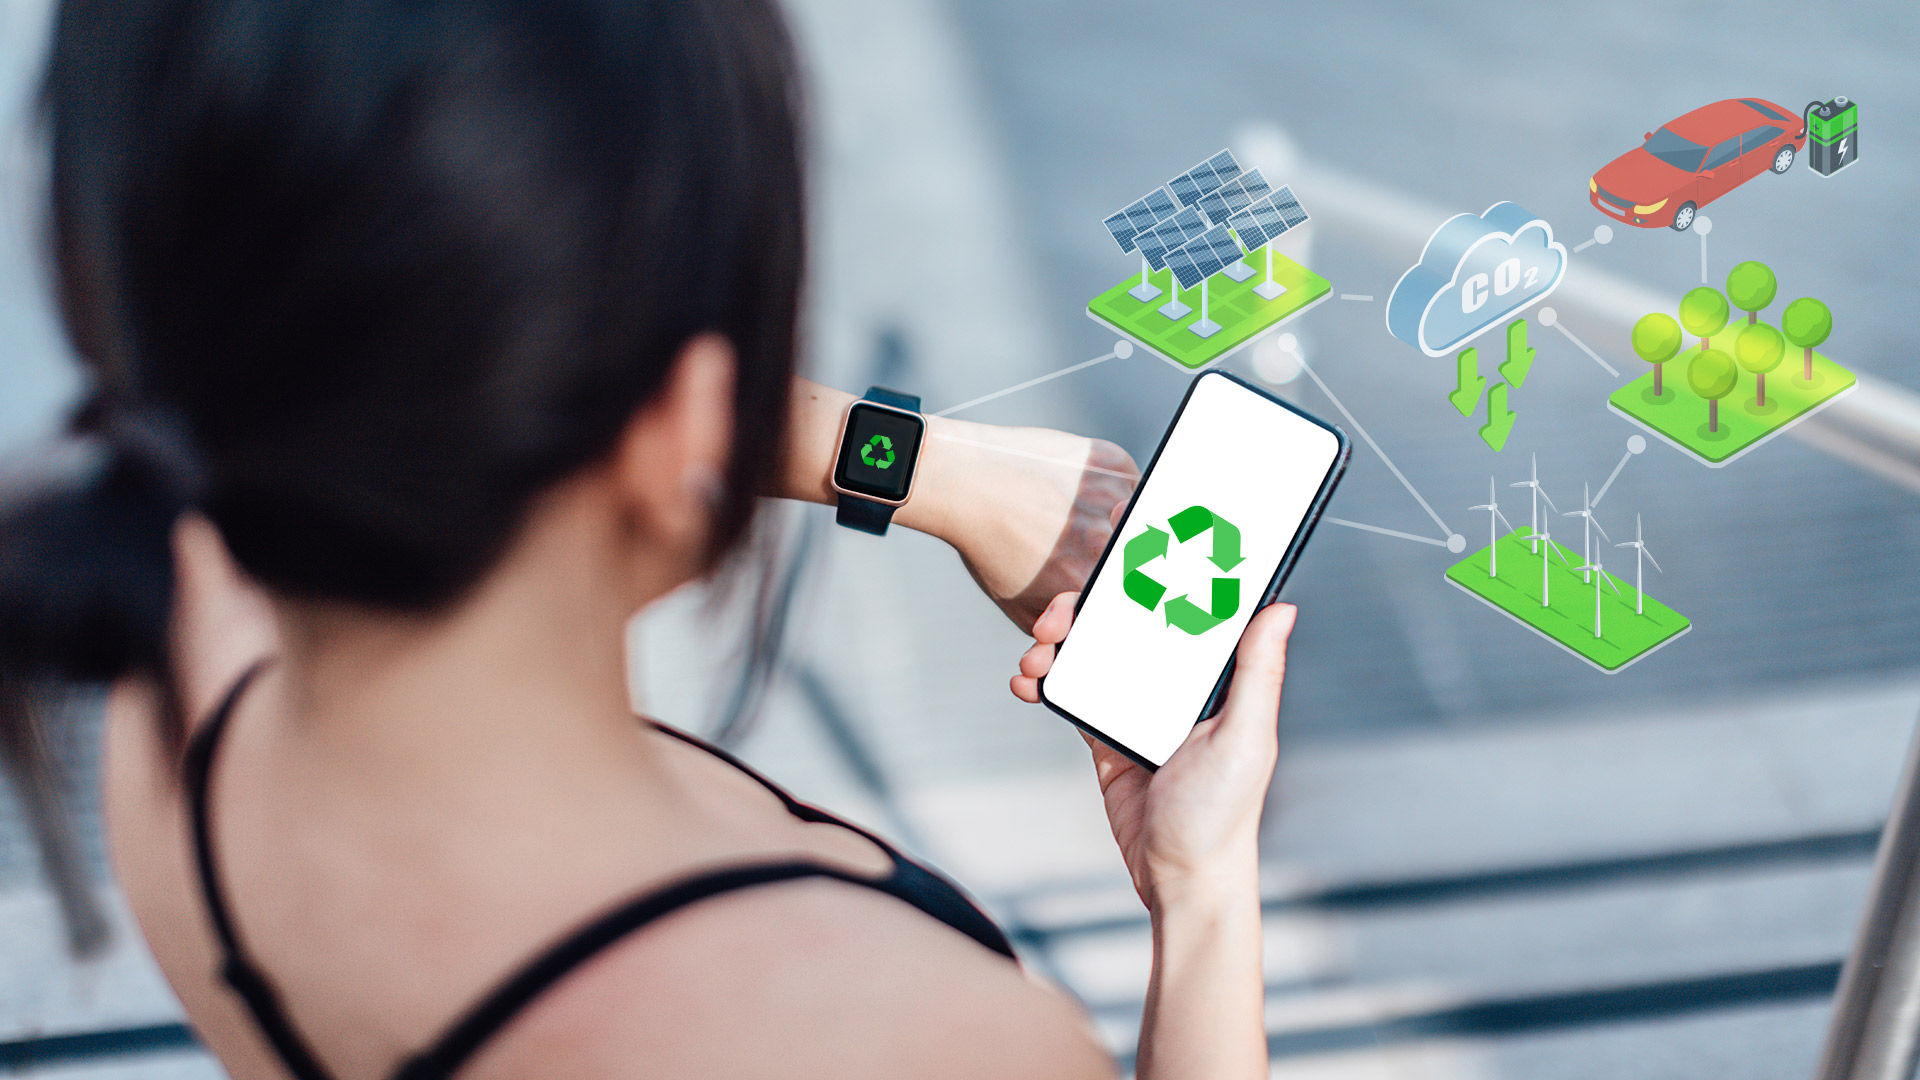 Planet smartwatch: being an island of data in a world of change